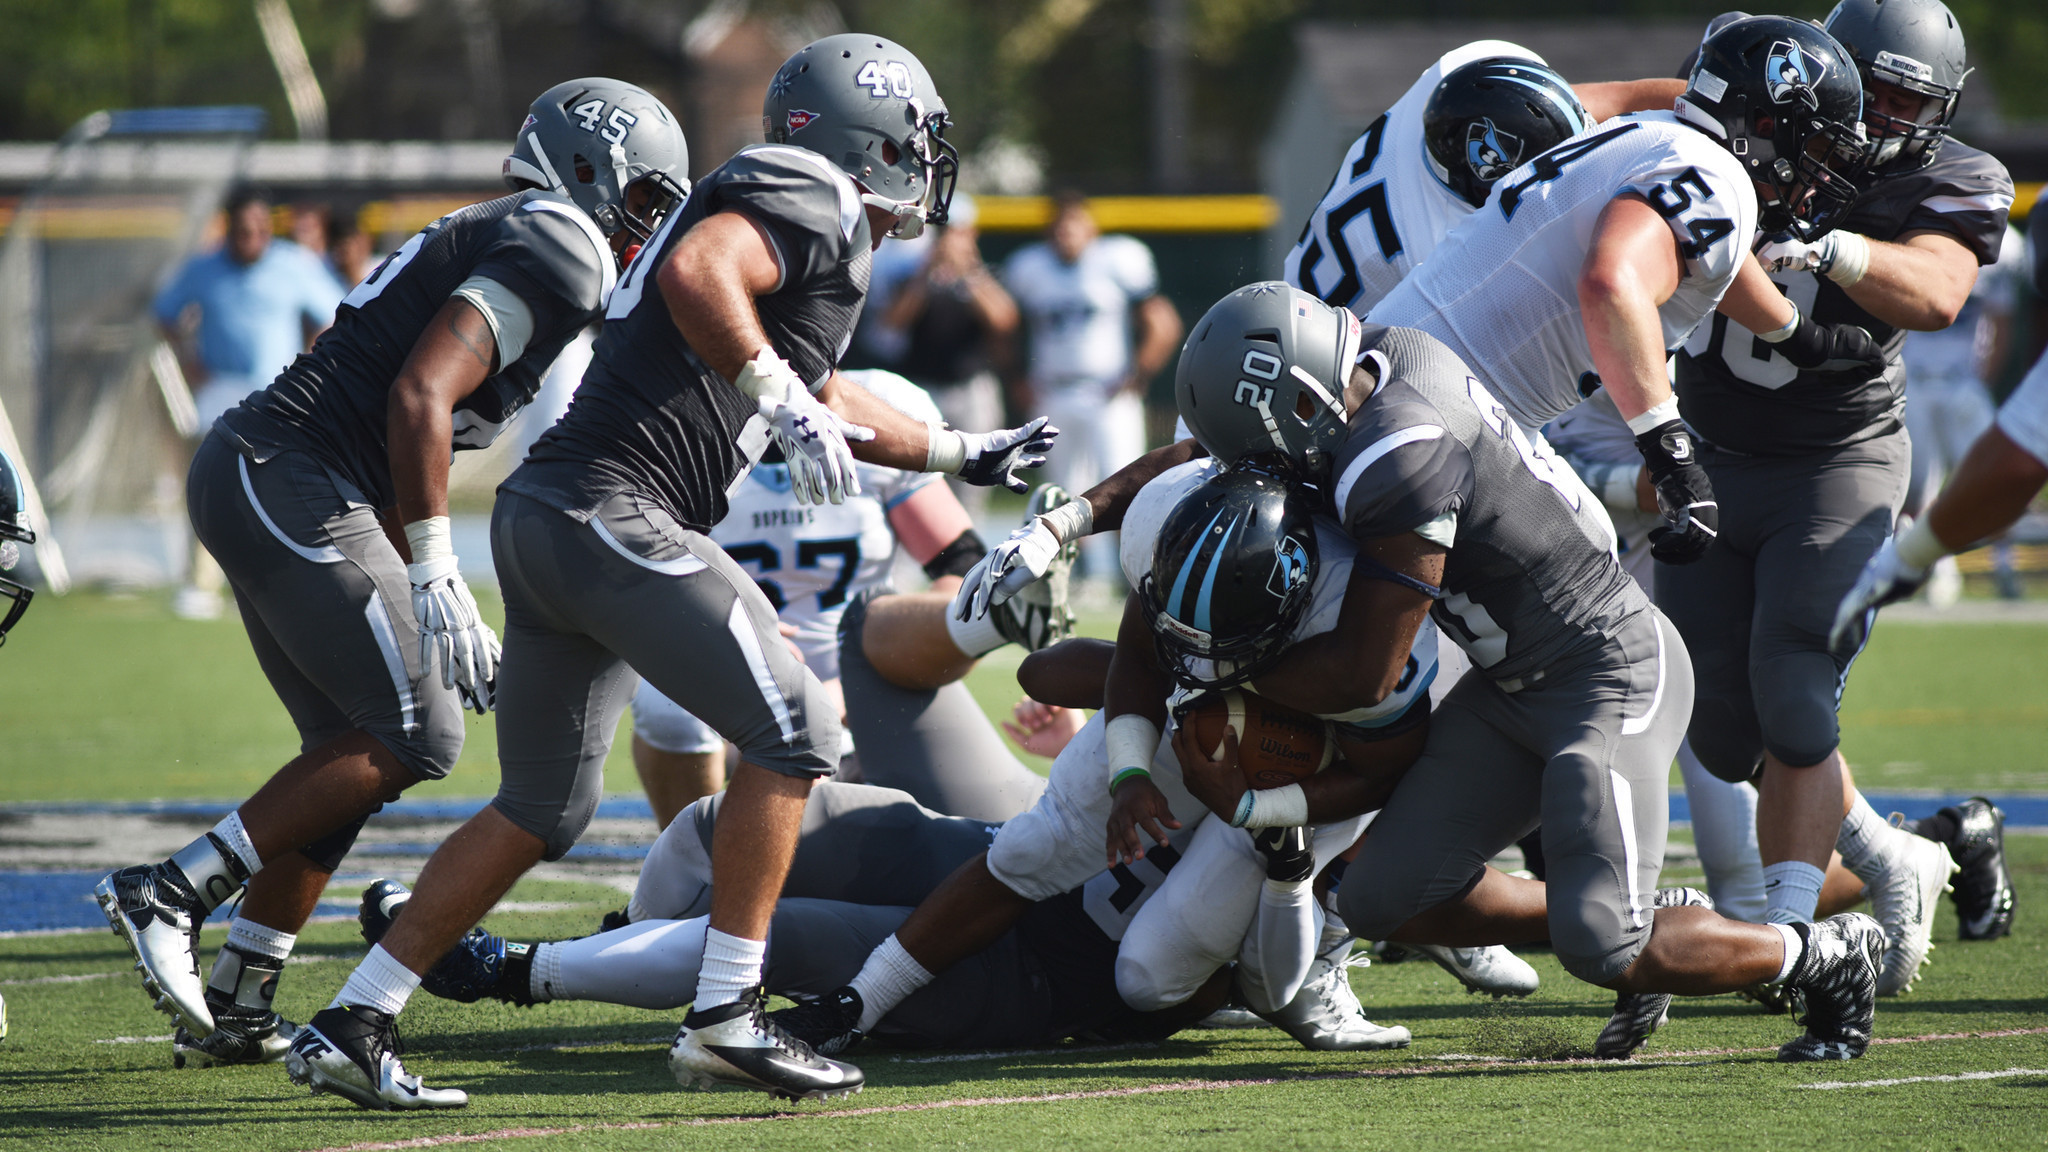 pictures: johns hopkins at moravian college football - the morning call